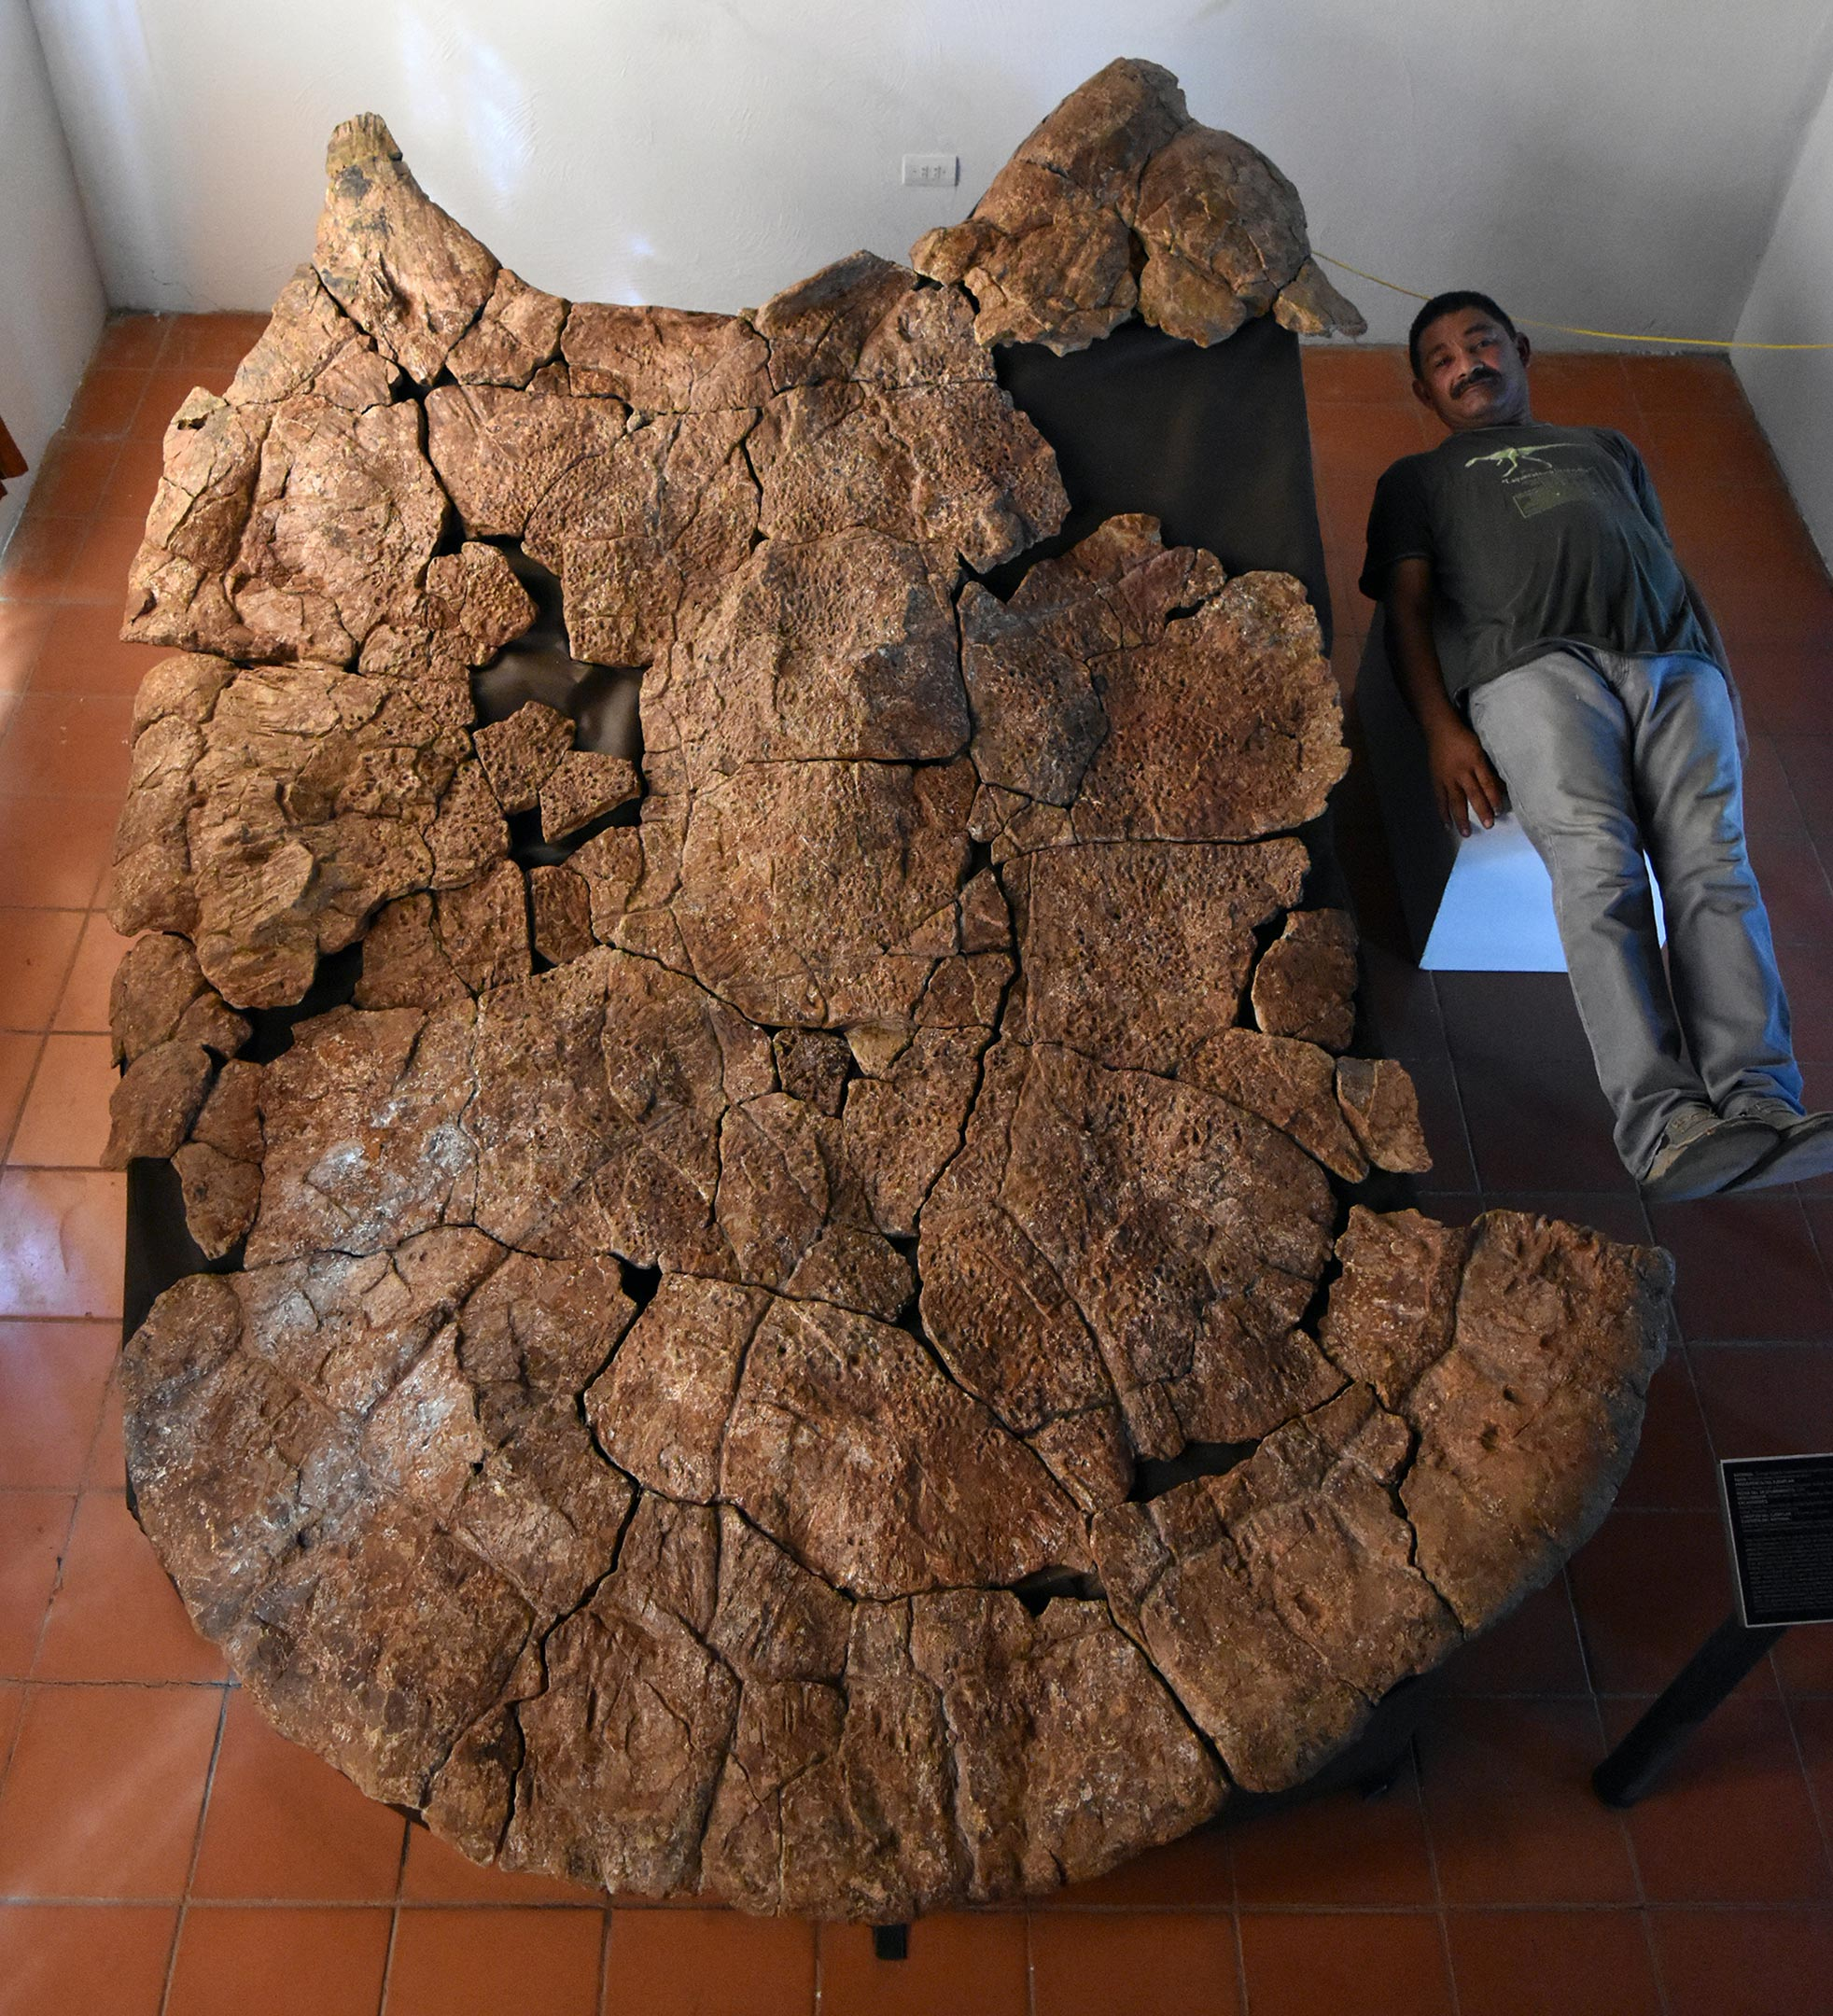 Scientists find car-sized turtle fossil